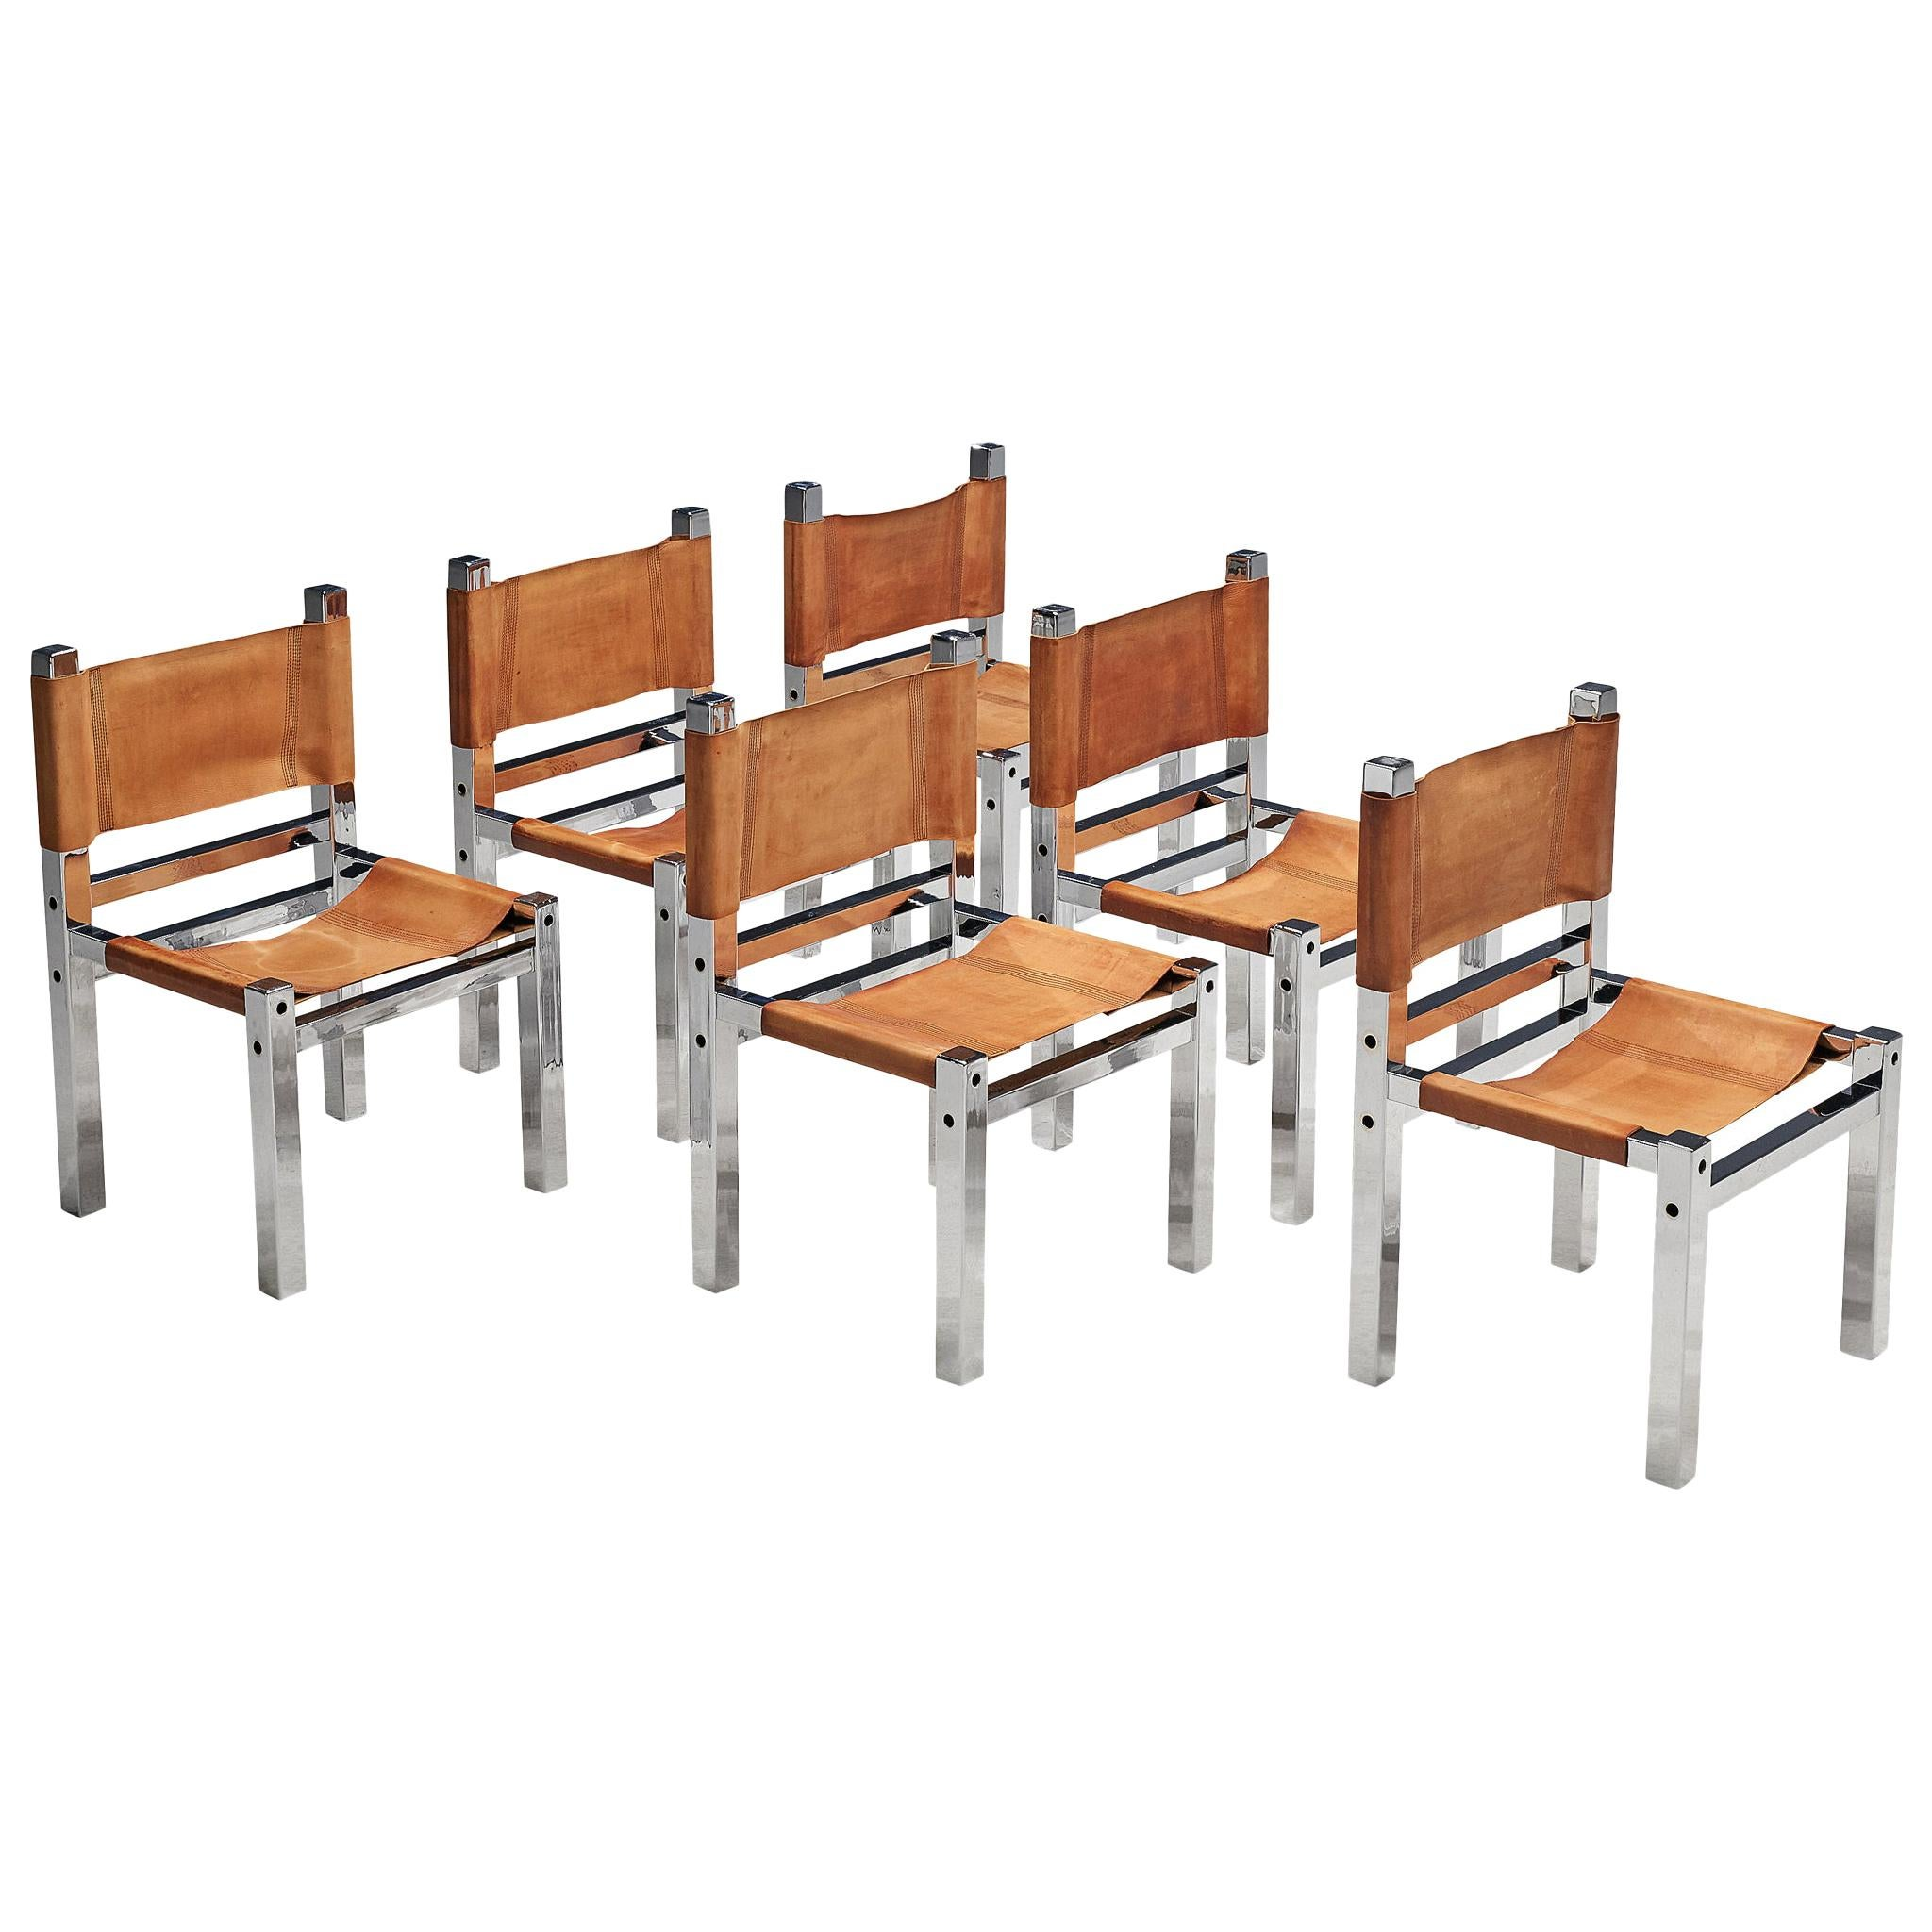 Italian Set of Six Chairs in Chromed Metal and Cognac Leather